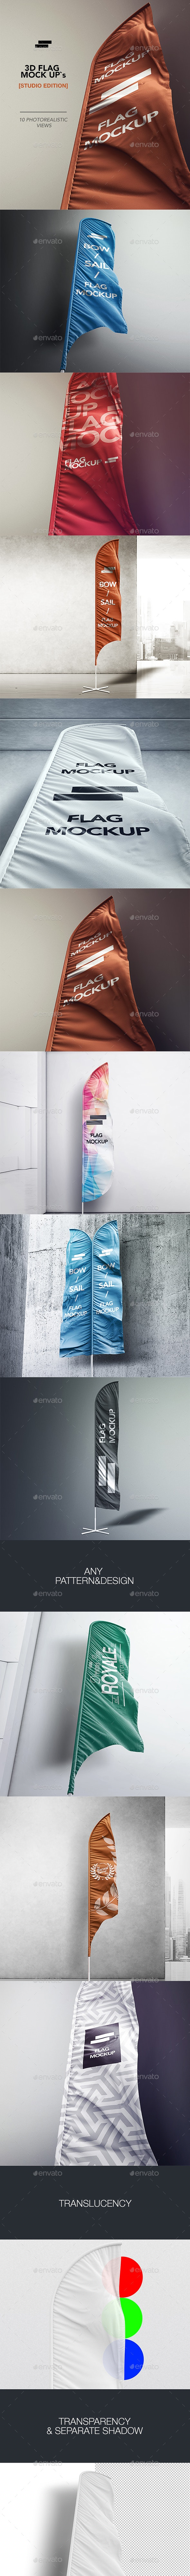 3D Flags Feather / Bow / Sail Flag Mockup - Signage Print